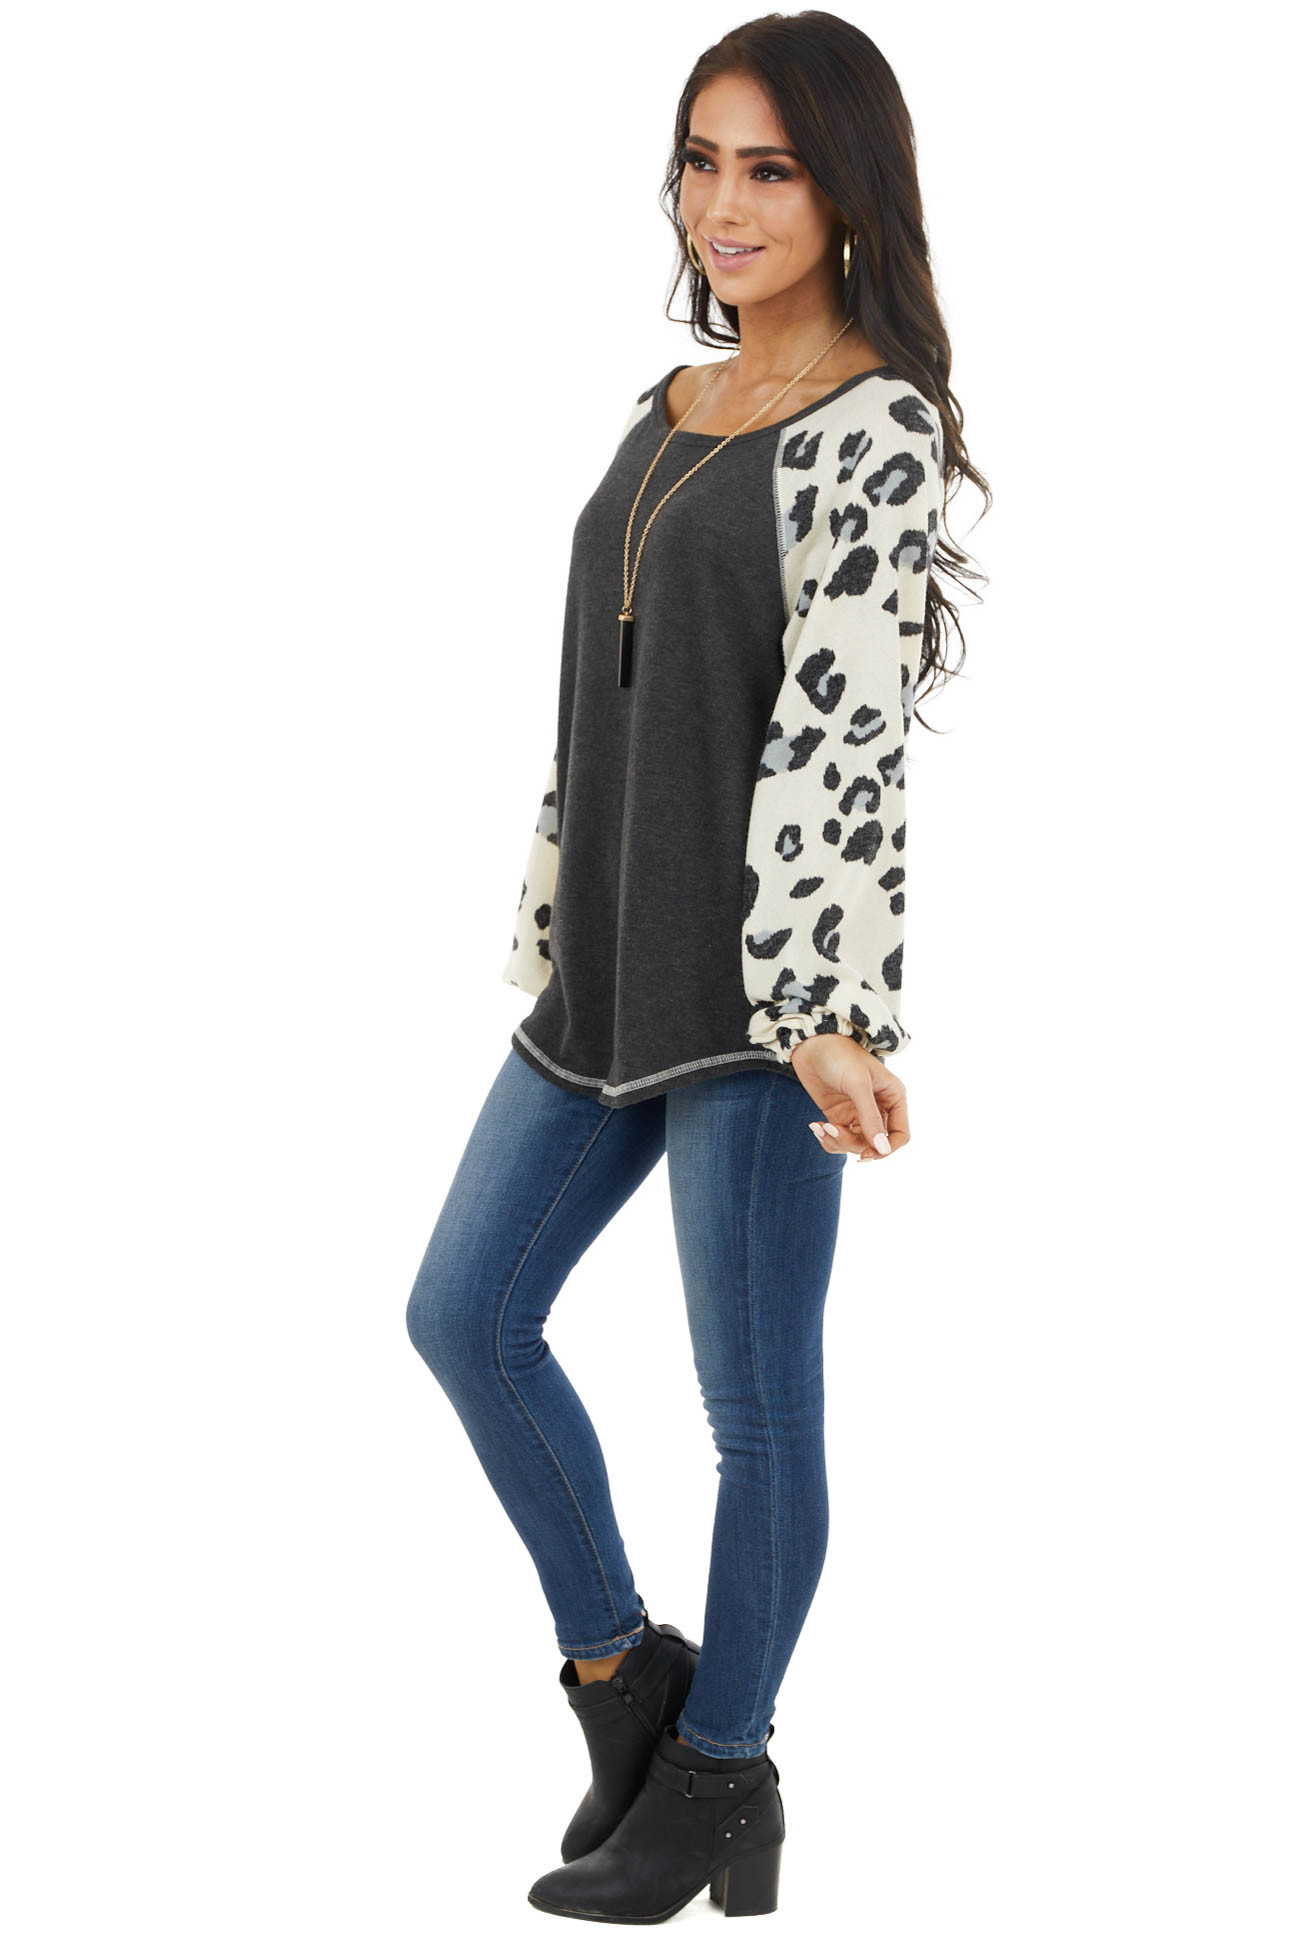 Charcoal Knit Top with Leopard Print Contrast Sleeves